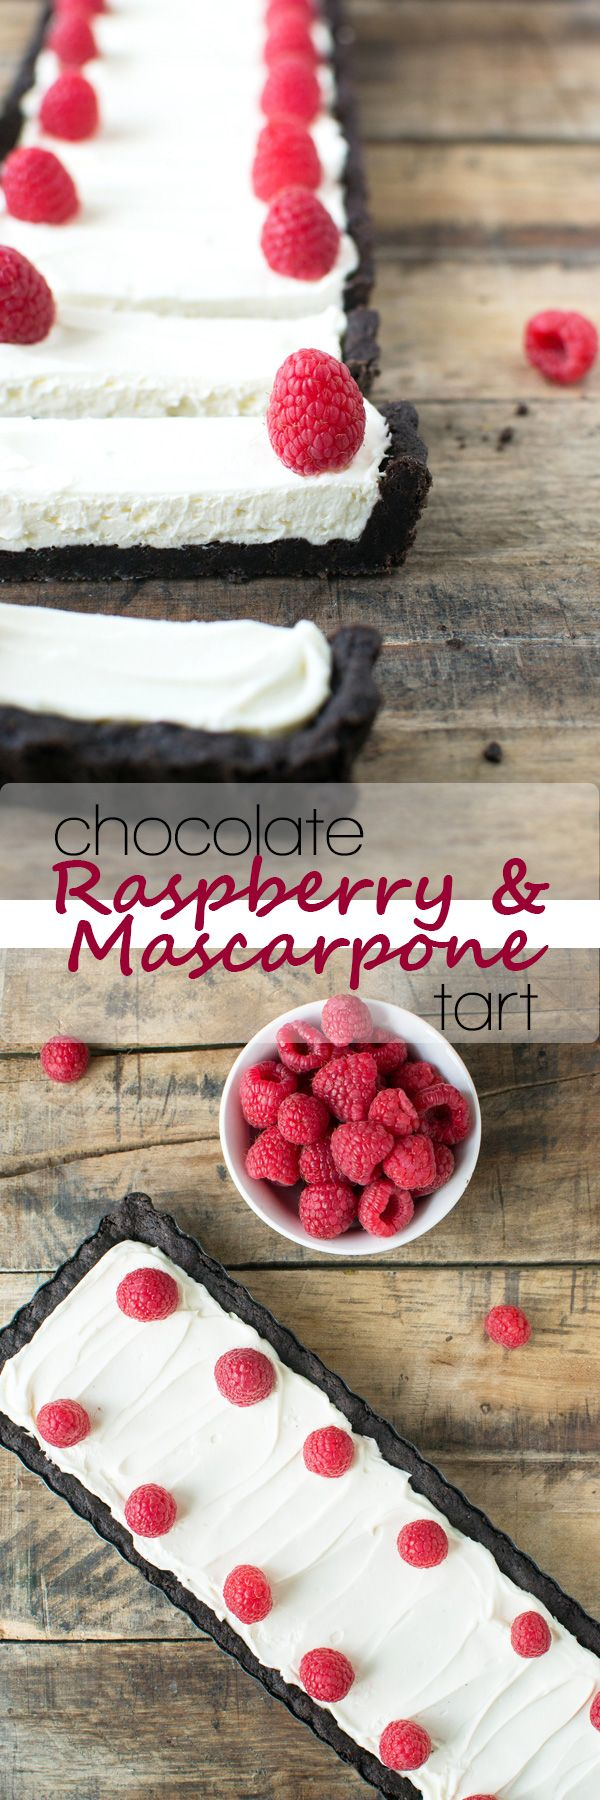 A dark chocolate cookie crust filled with whipped mascarpone and topped with raspberries.  This dessert tart will win hearts for Valentine's Day!